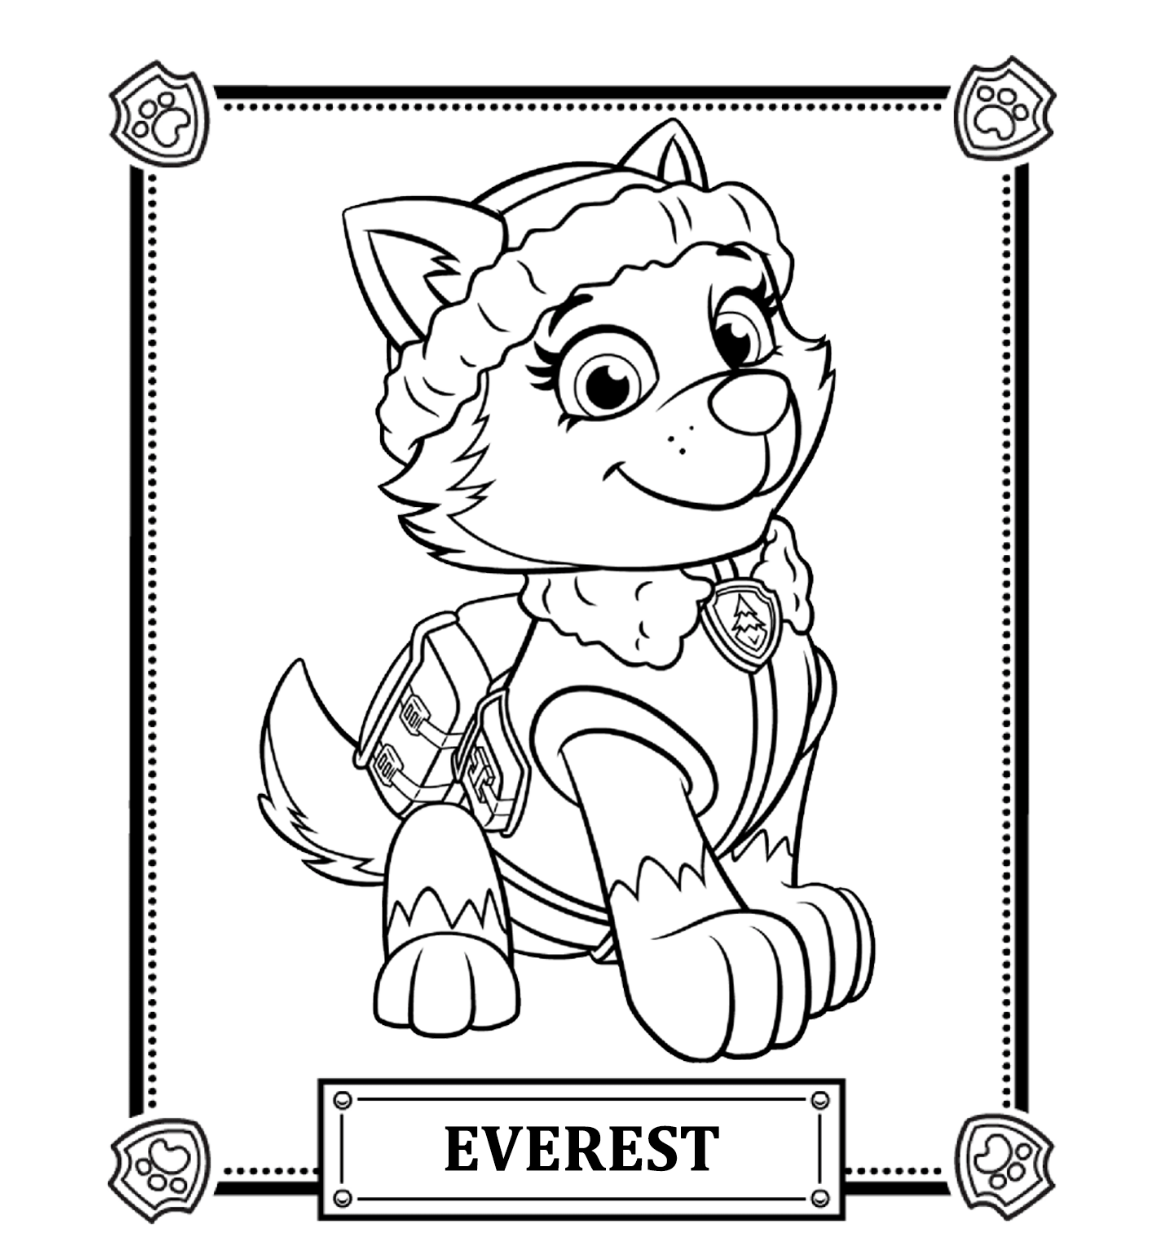 Paw patrol coloring pages best coloring pages for kids Coloring book for toddlers